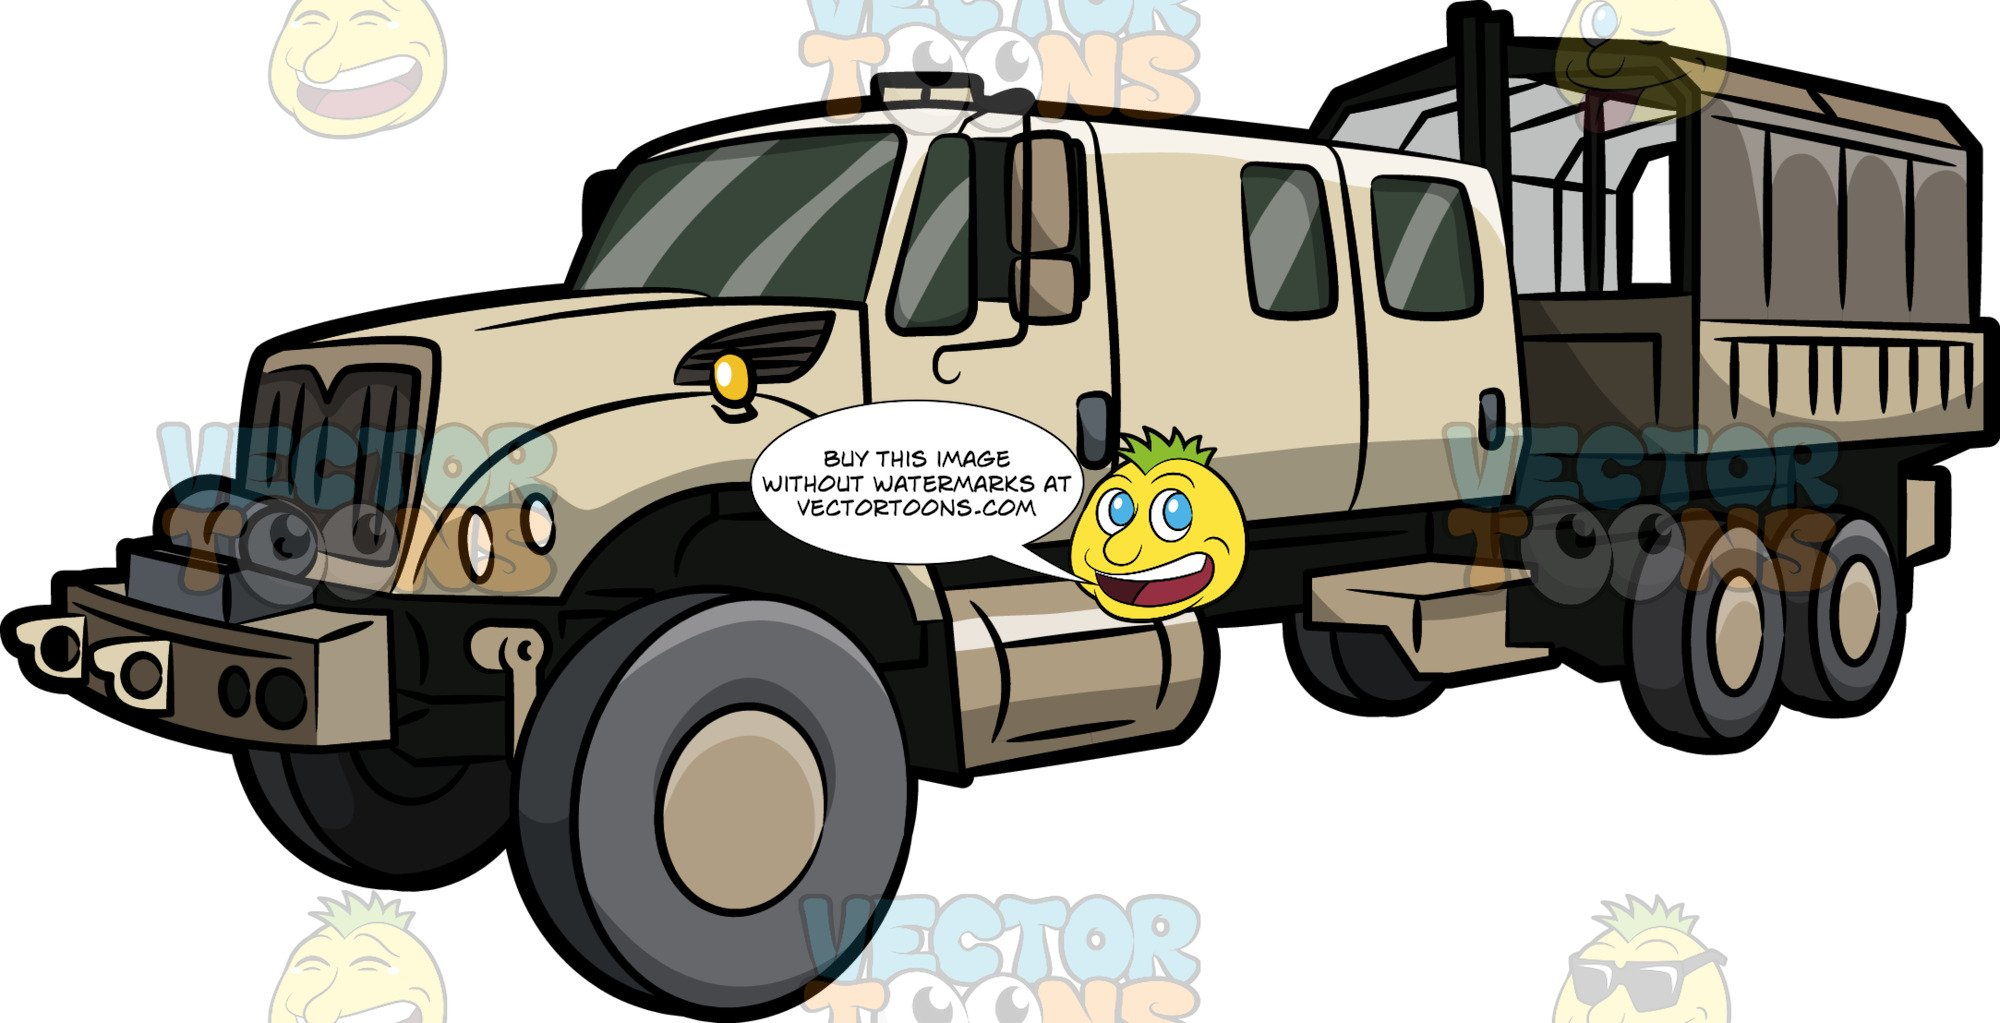 Army truck clipart graphic transparent A Big Army Truck Vehicle graphic transparent